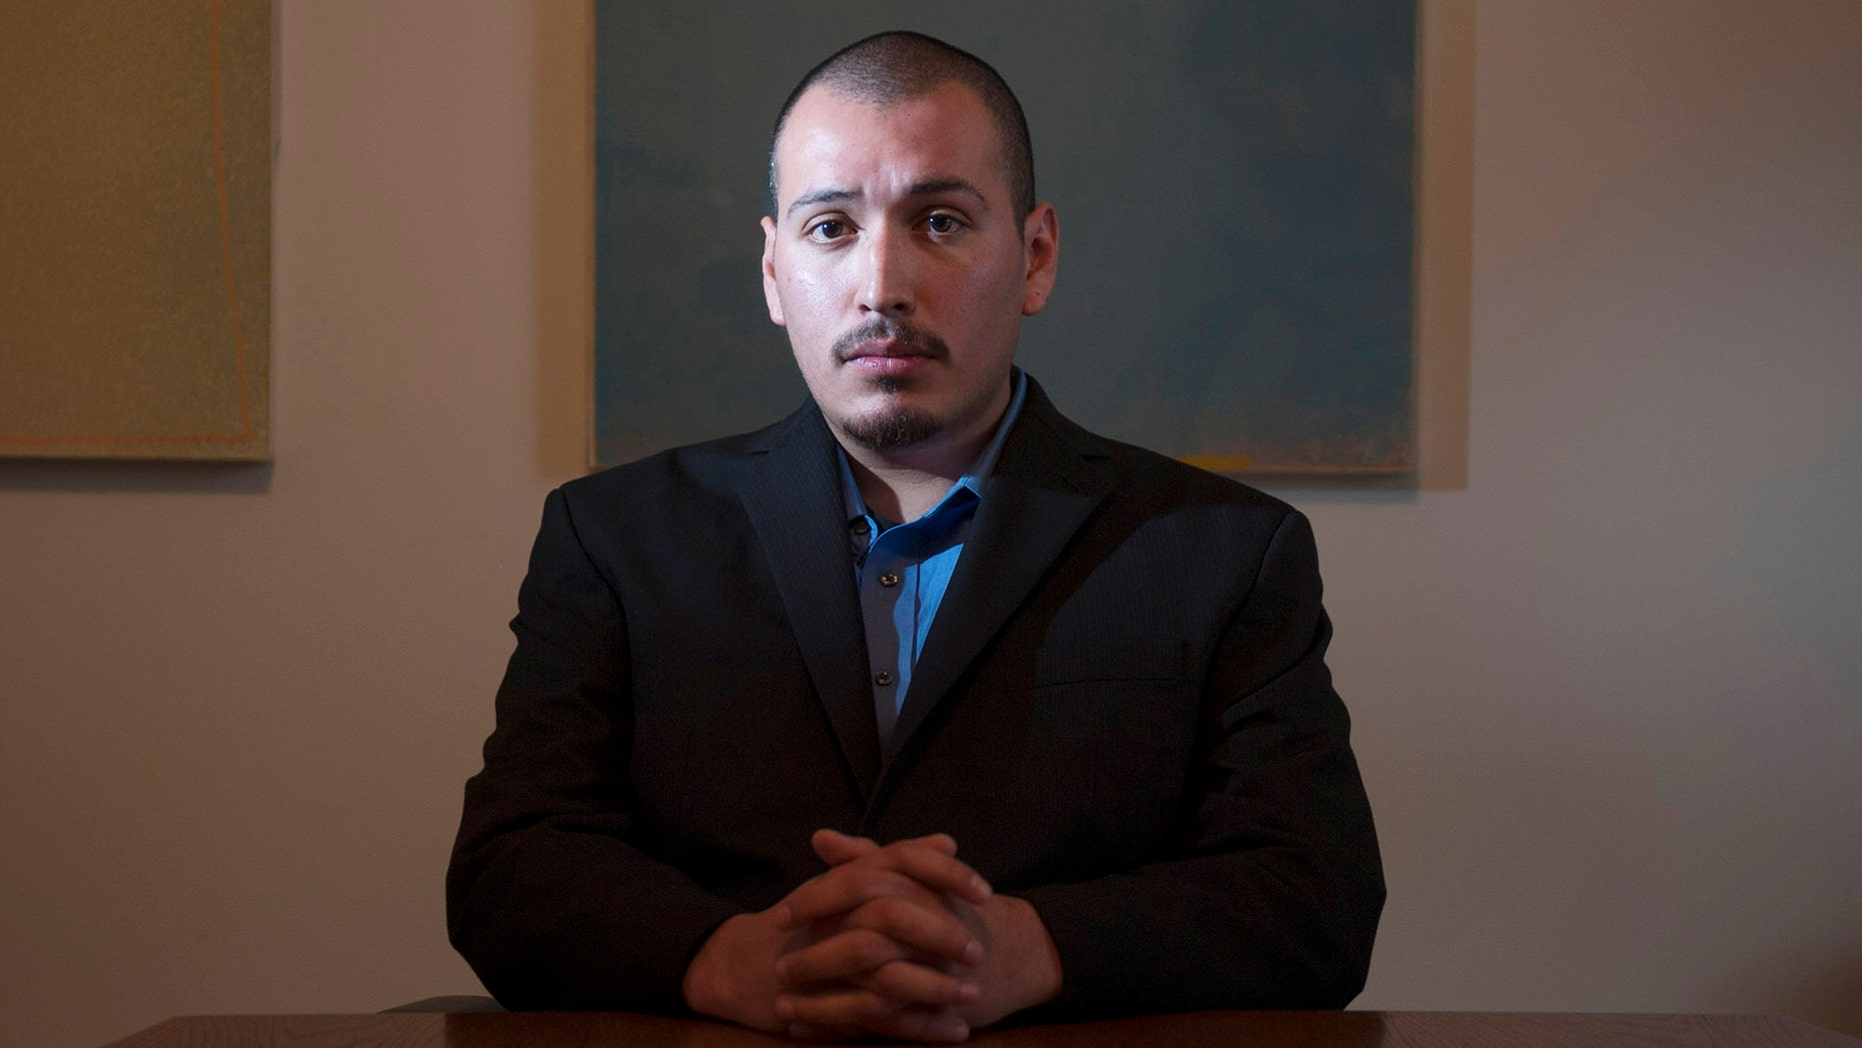 In this Dec. 7, 2013 photo, Eder Herrera poses for a photo. The Southern California city of Brea will pay $700,000 to Herrera who was arrested in the 2011 killings of his mother and brother but was freed when his high school friend confessed to the crimes, lawyers said Tuesday, April 28, 2015. (Miguel Vasconcellos/The Orange County Register via AP)